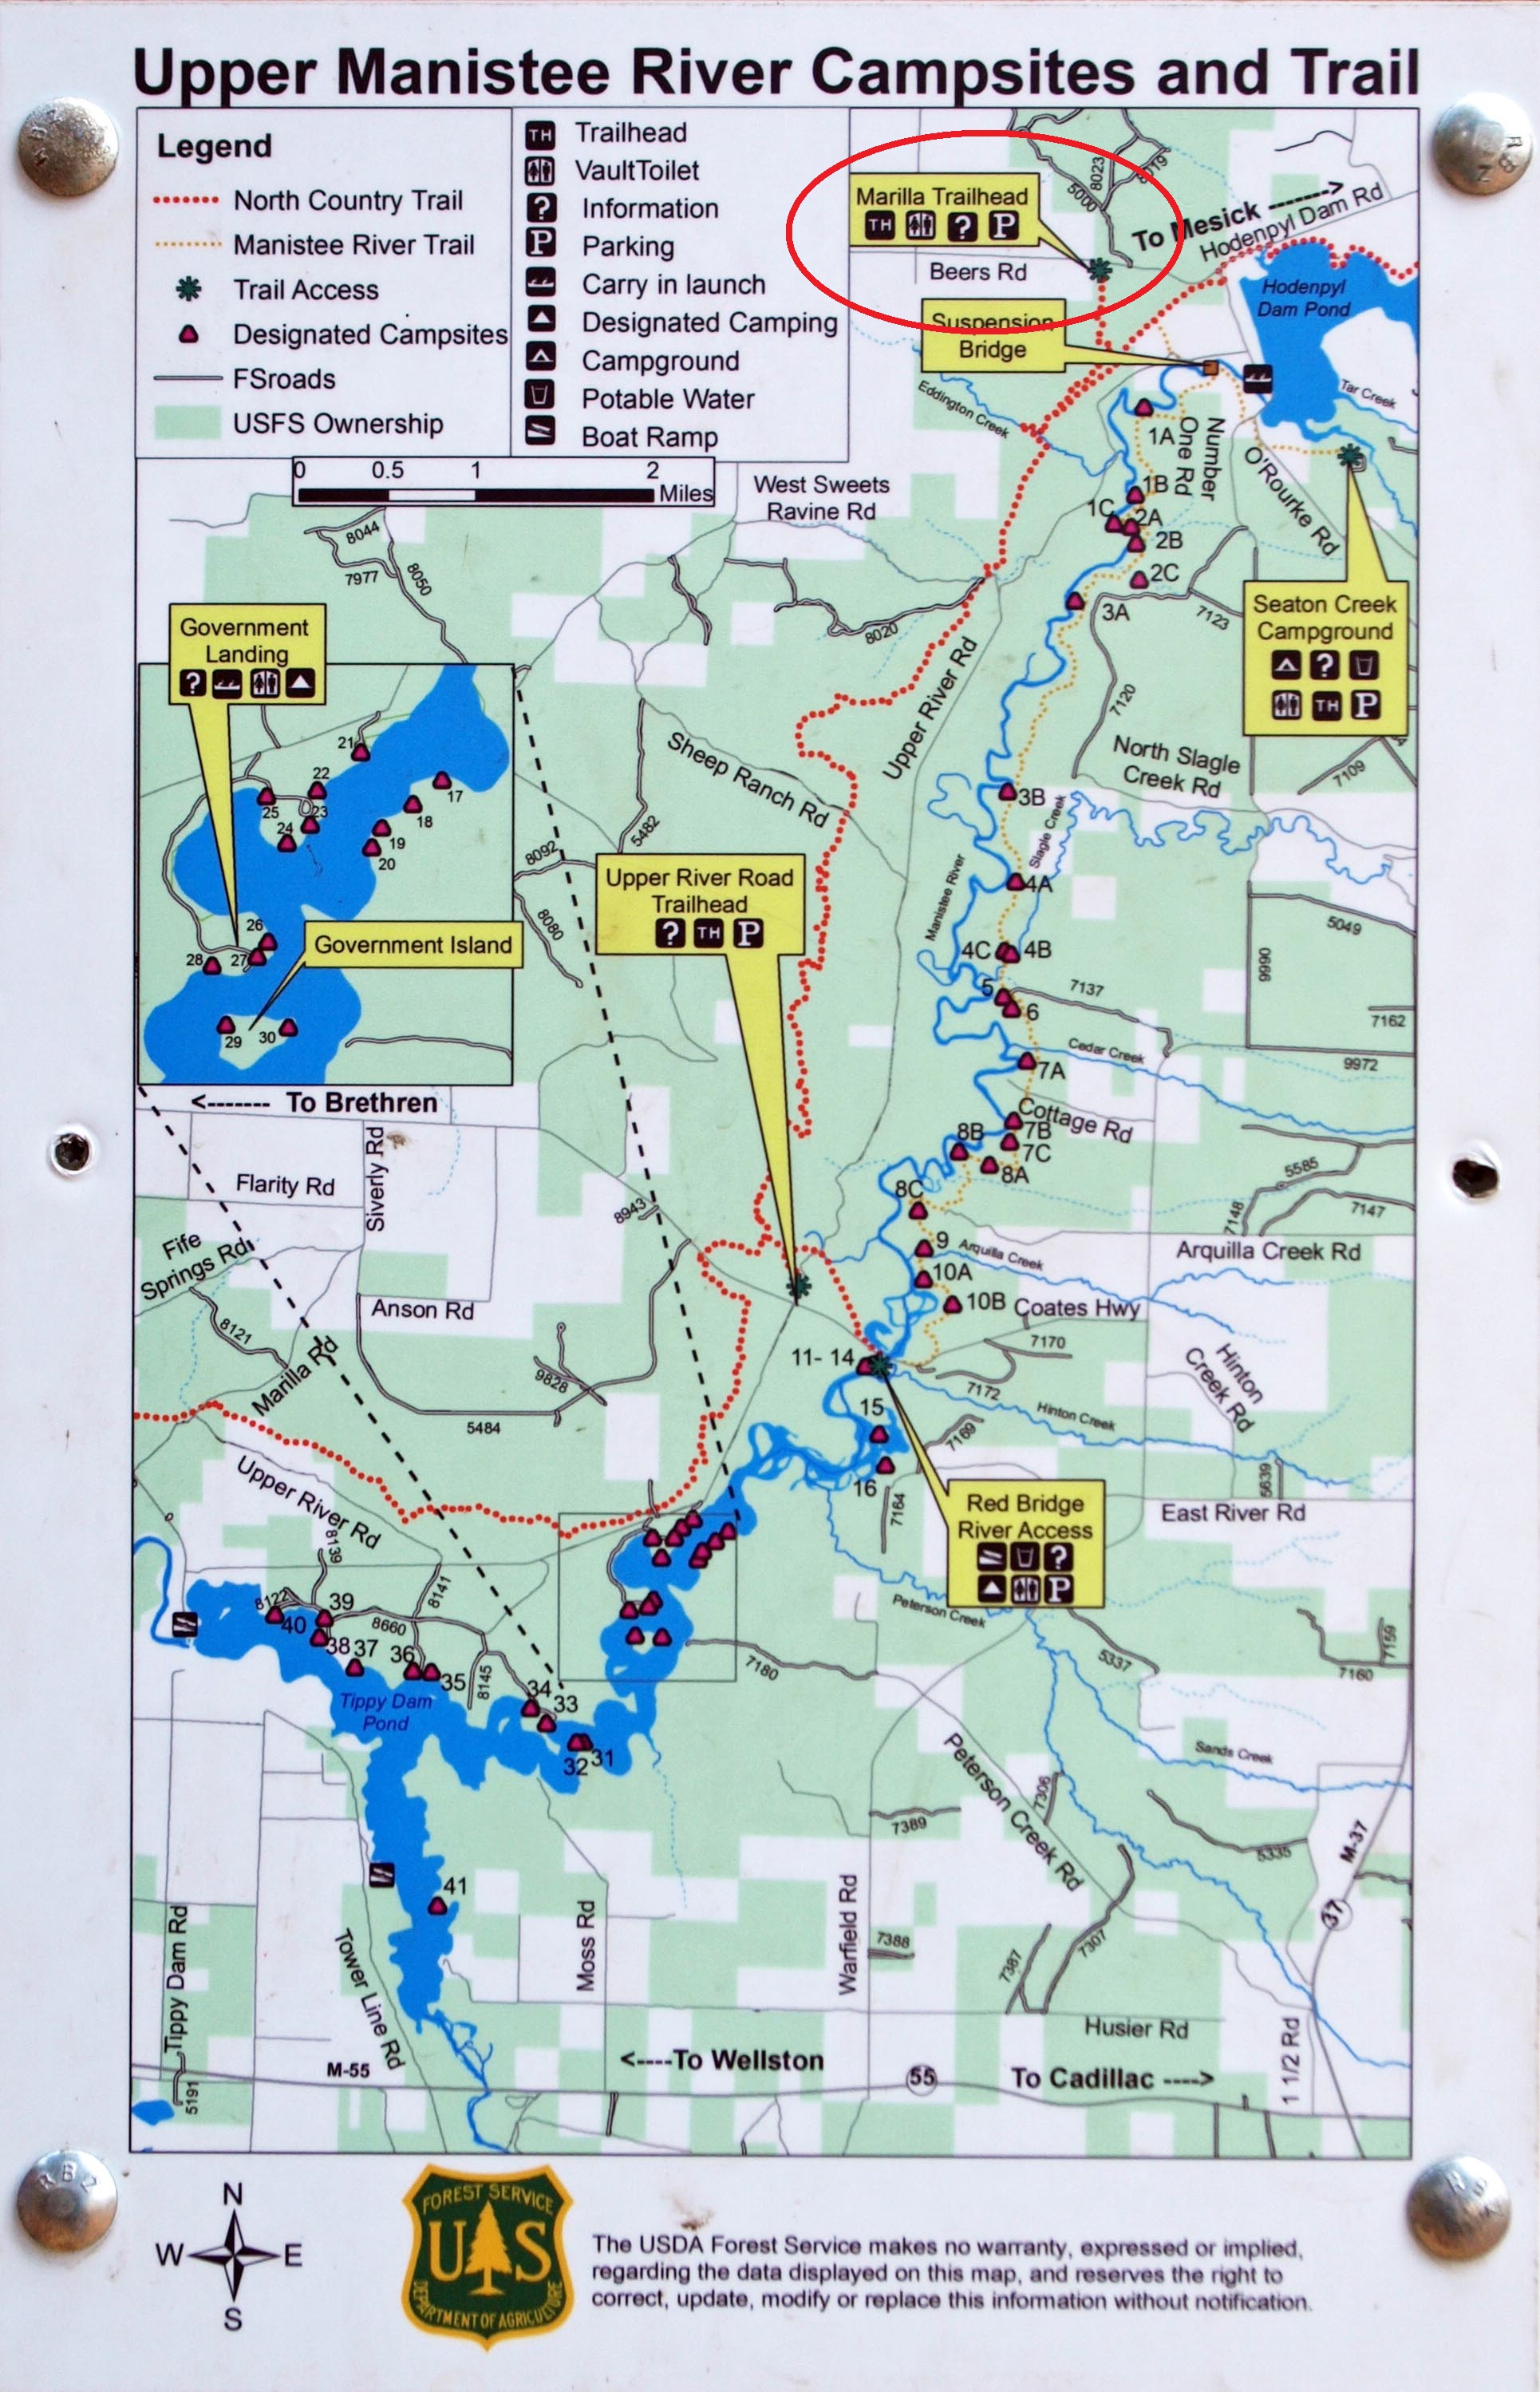 our plan was to jump onto that red dotted line you see that indicates the northcountry trail and head south to the second of two creeks to set up camp for. hiking the north country trail side of the manistee river day one